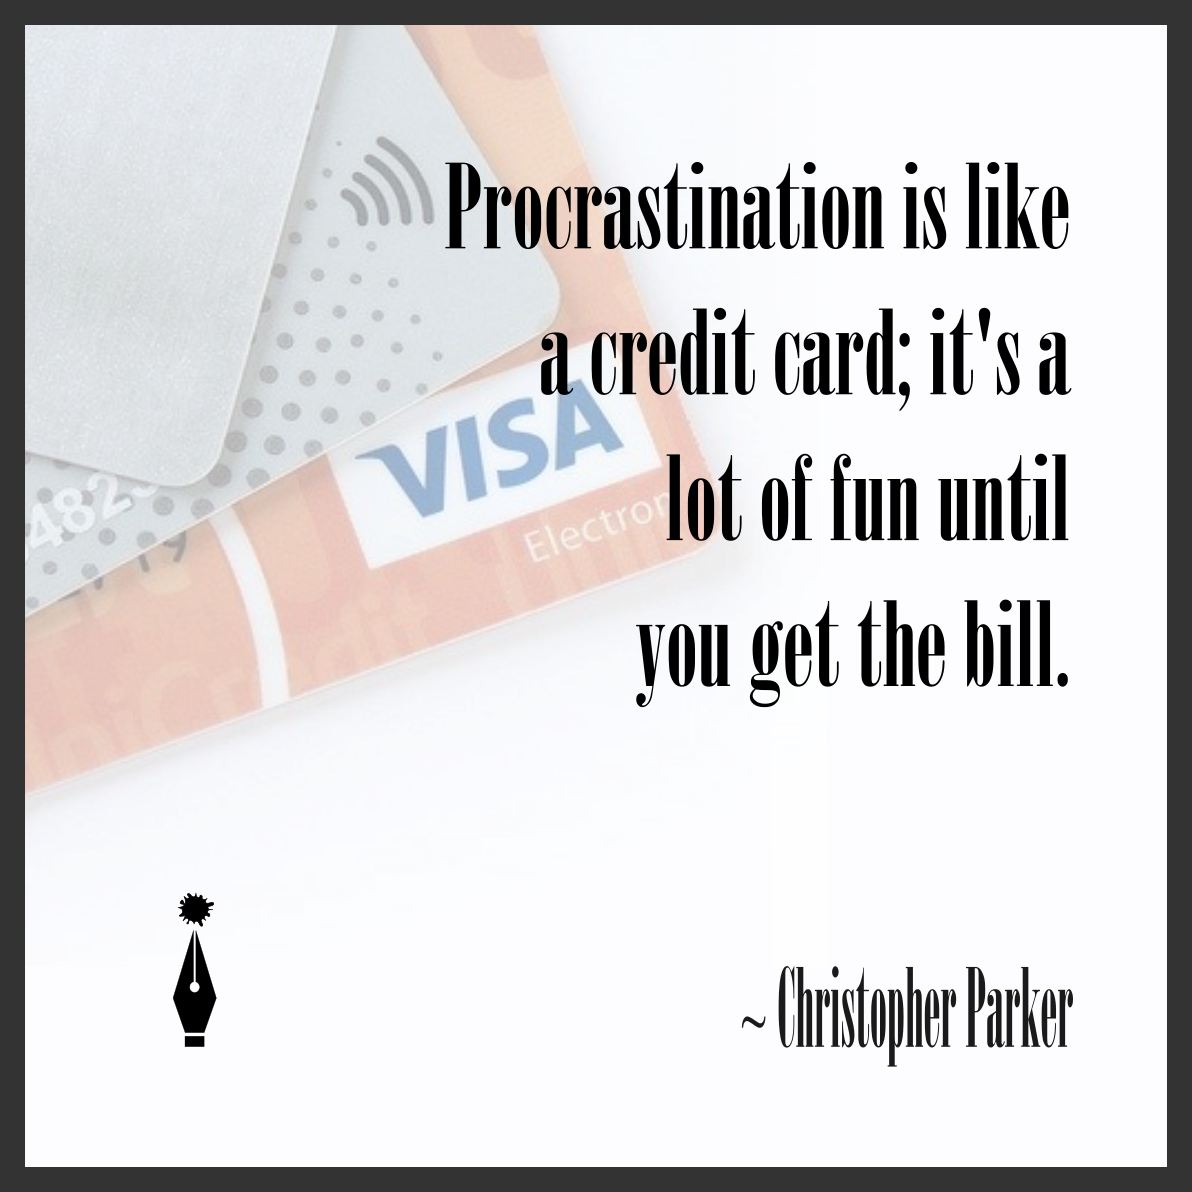 Christopher Parker quote